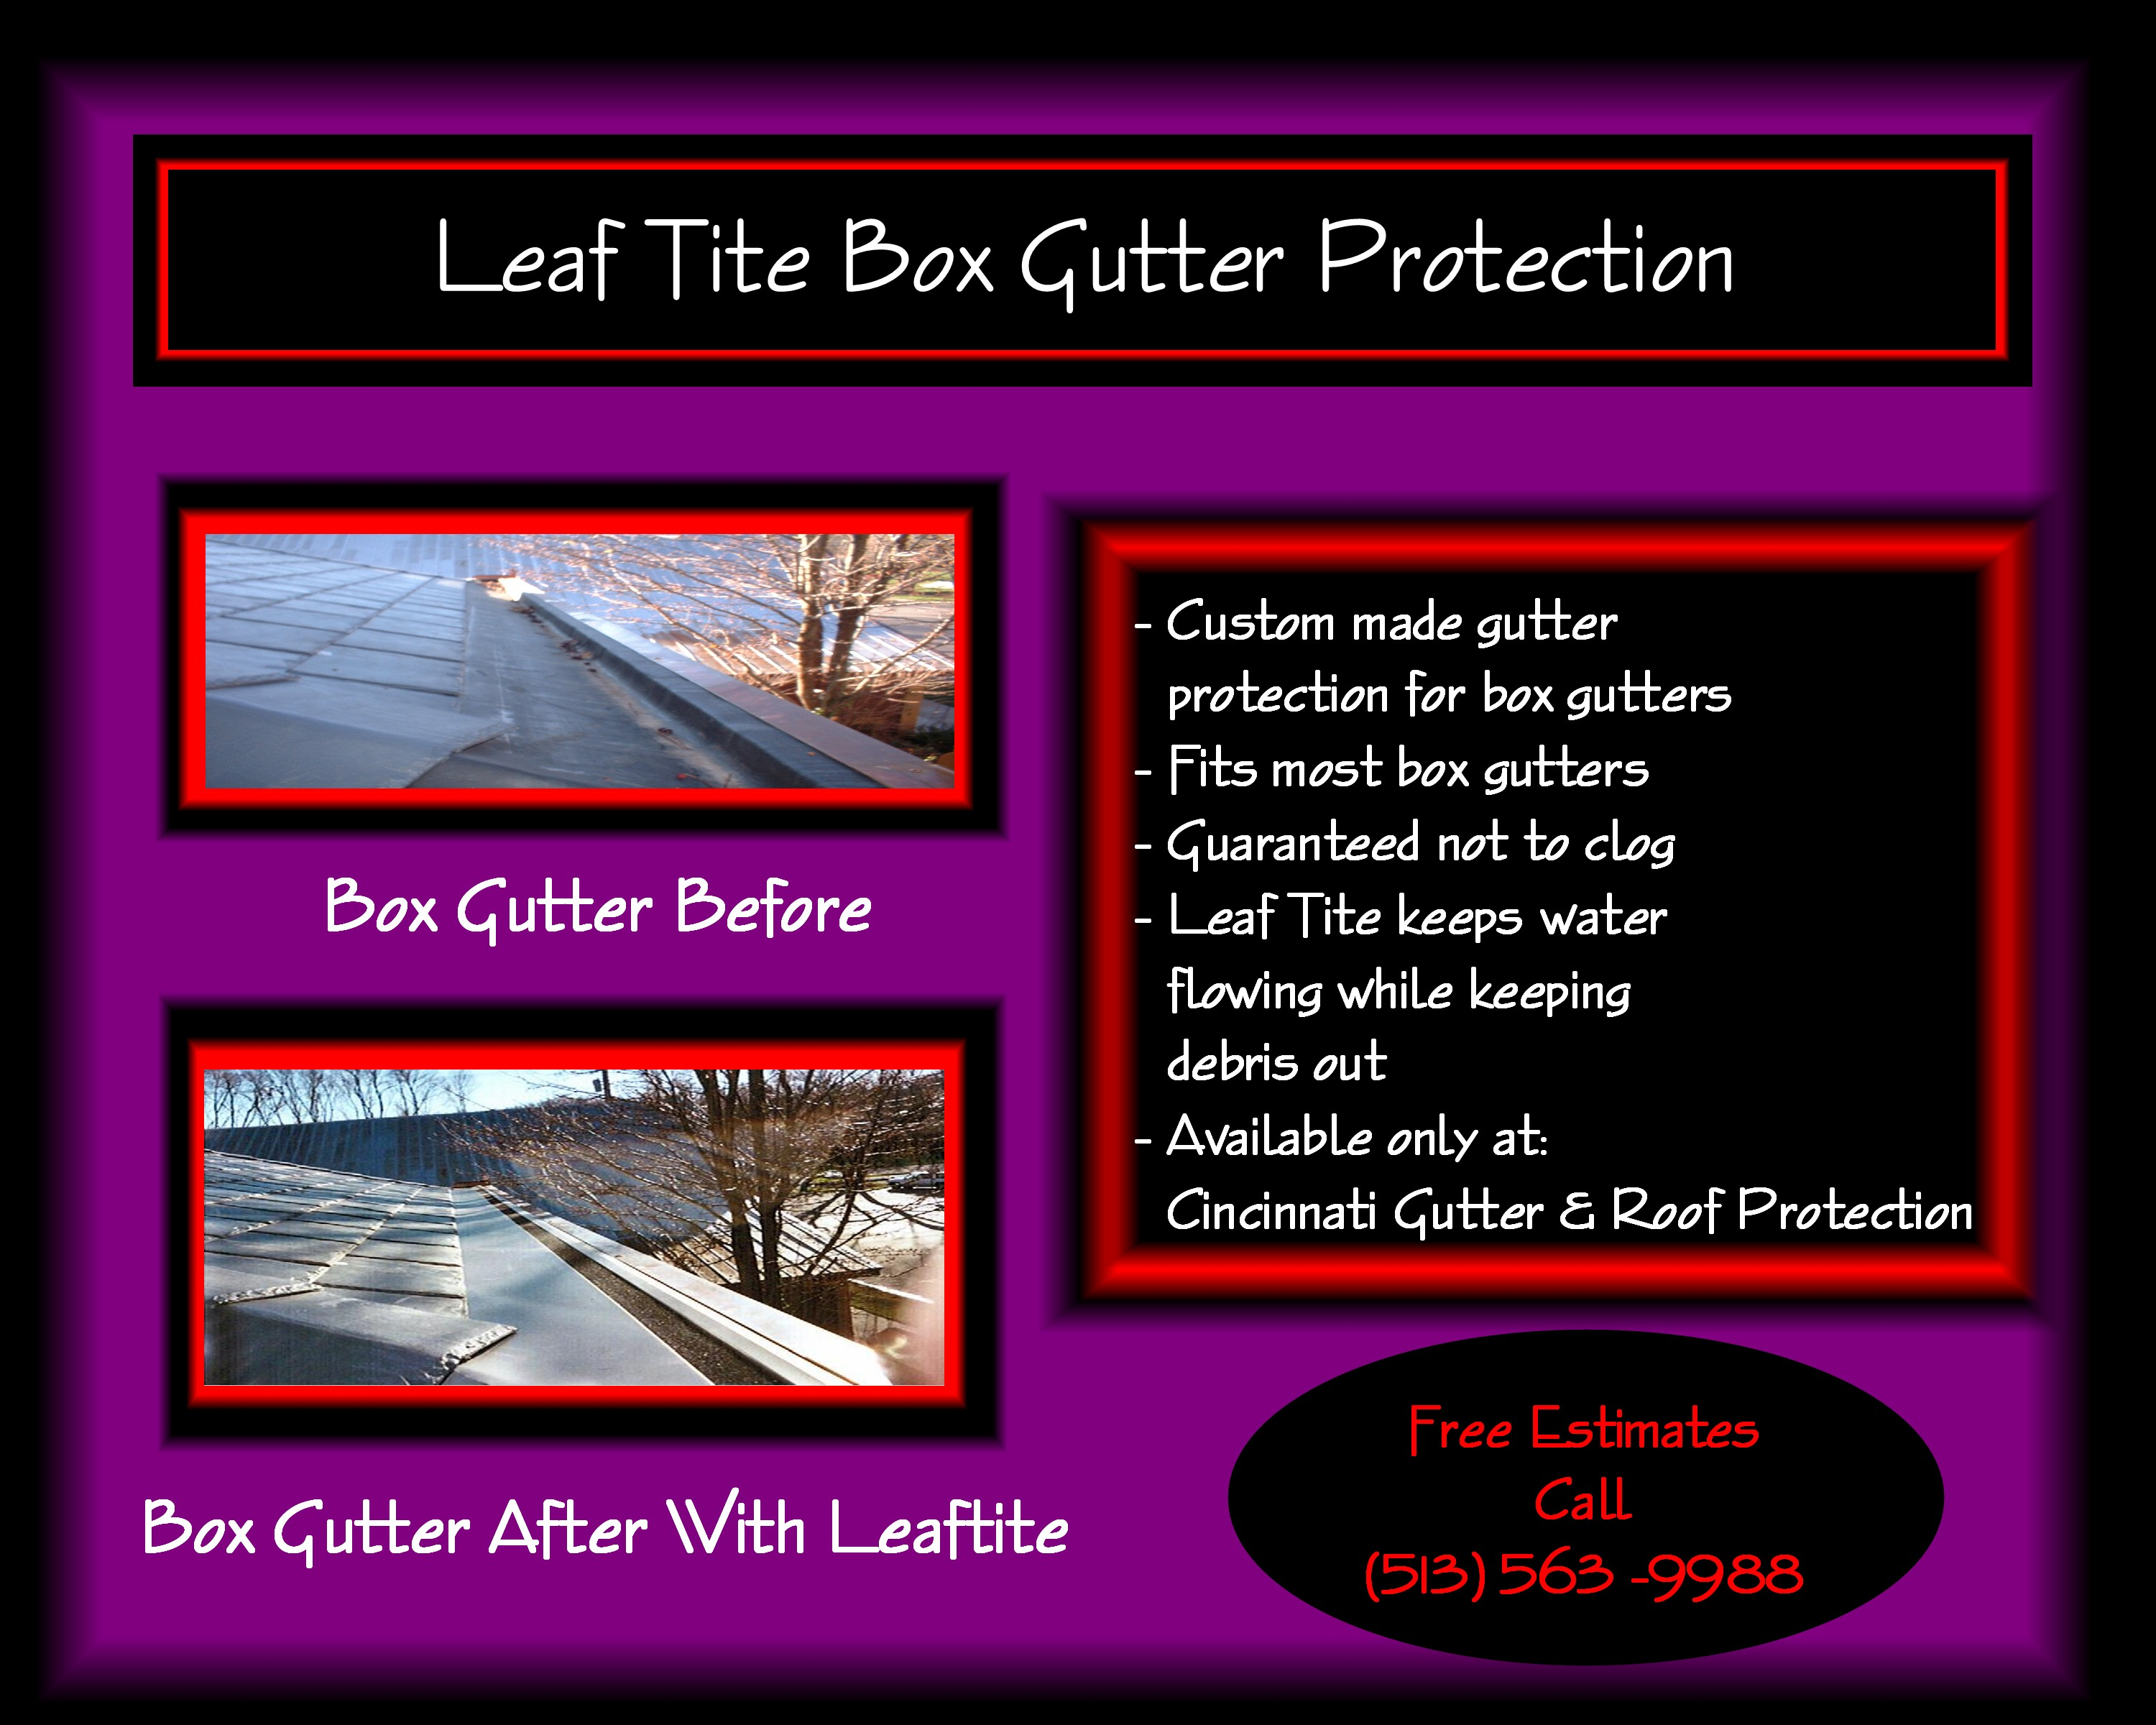 Roof Cleaning Cincinnati Gutter Amp Roof Protection